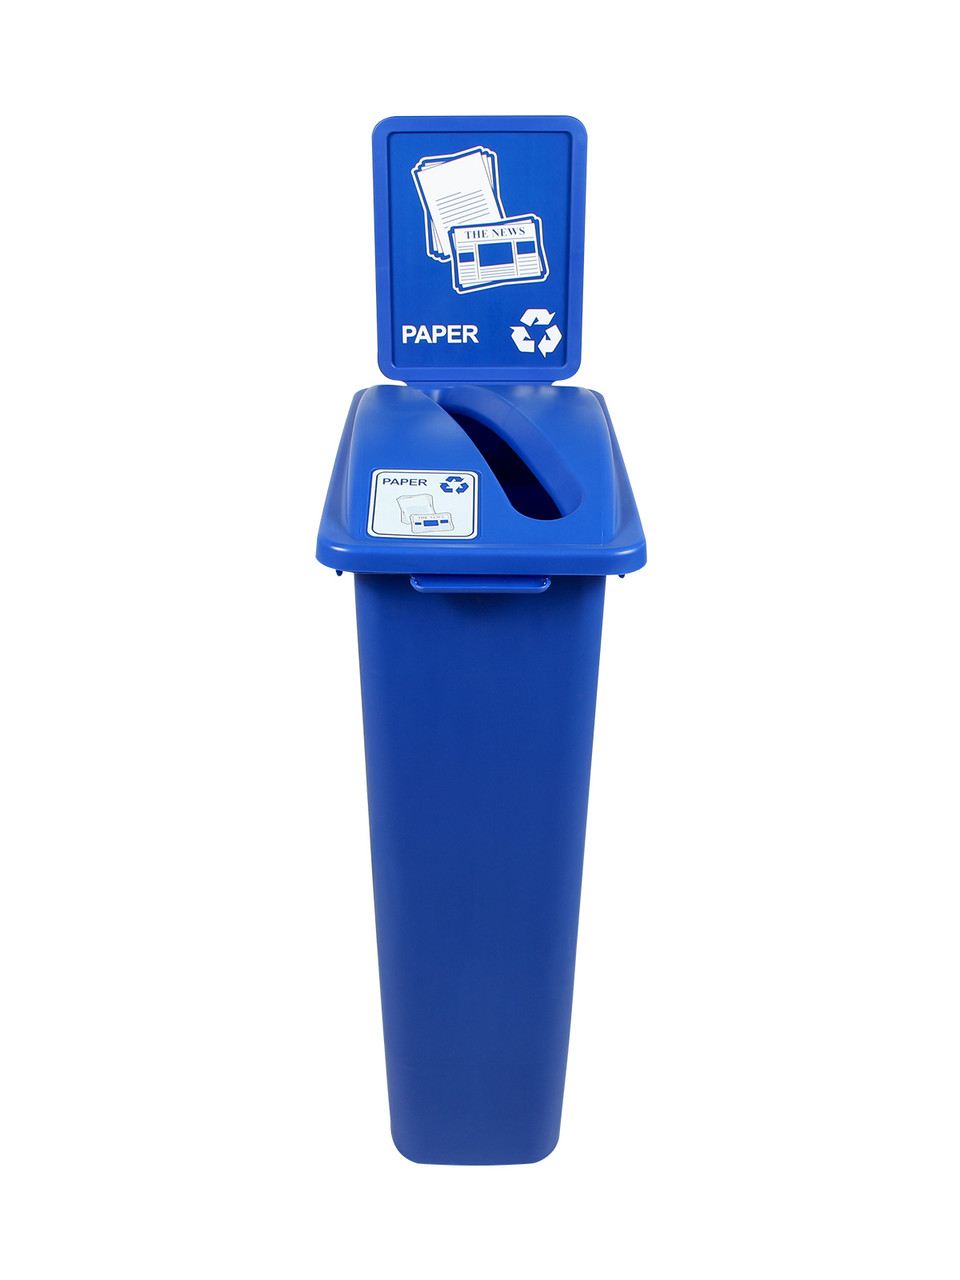 23 Gallon Blue Skinny Recycle Bin with Sign (Paper)